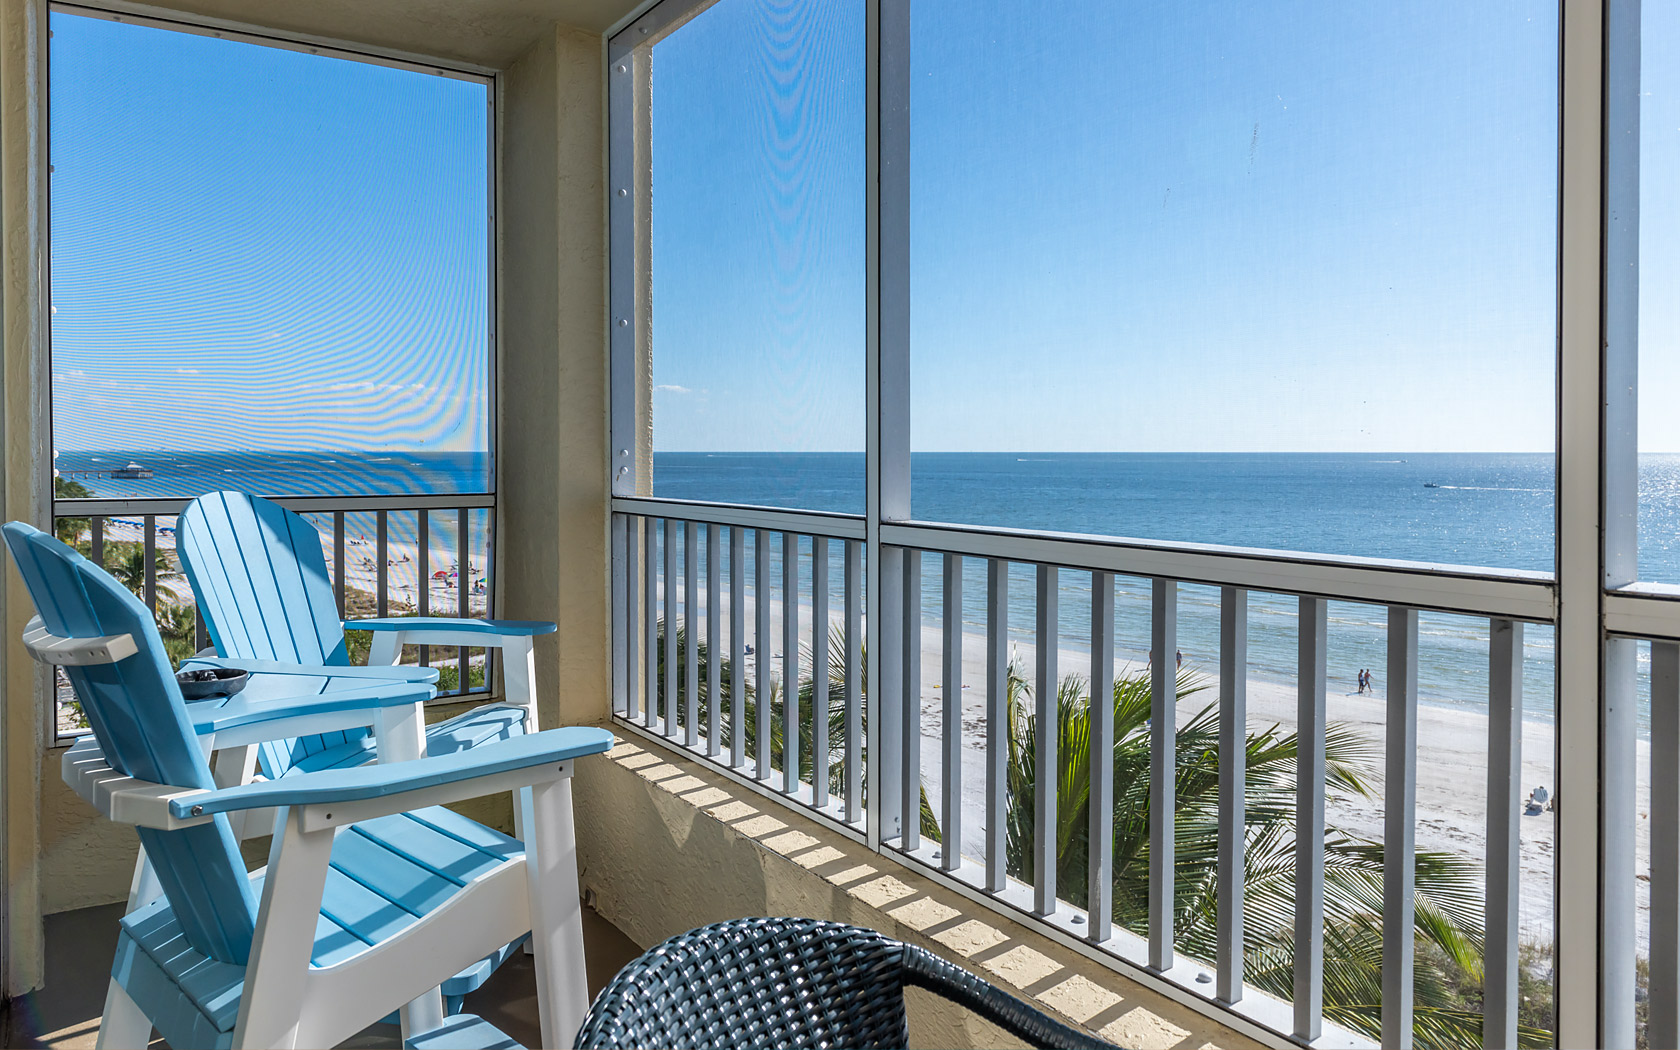 Casa Play Resort Gulfview Suite balcony with oceanfront view